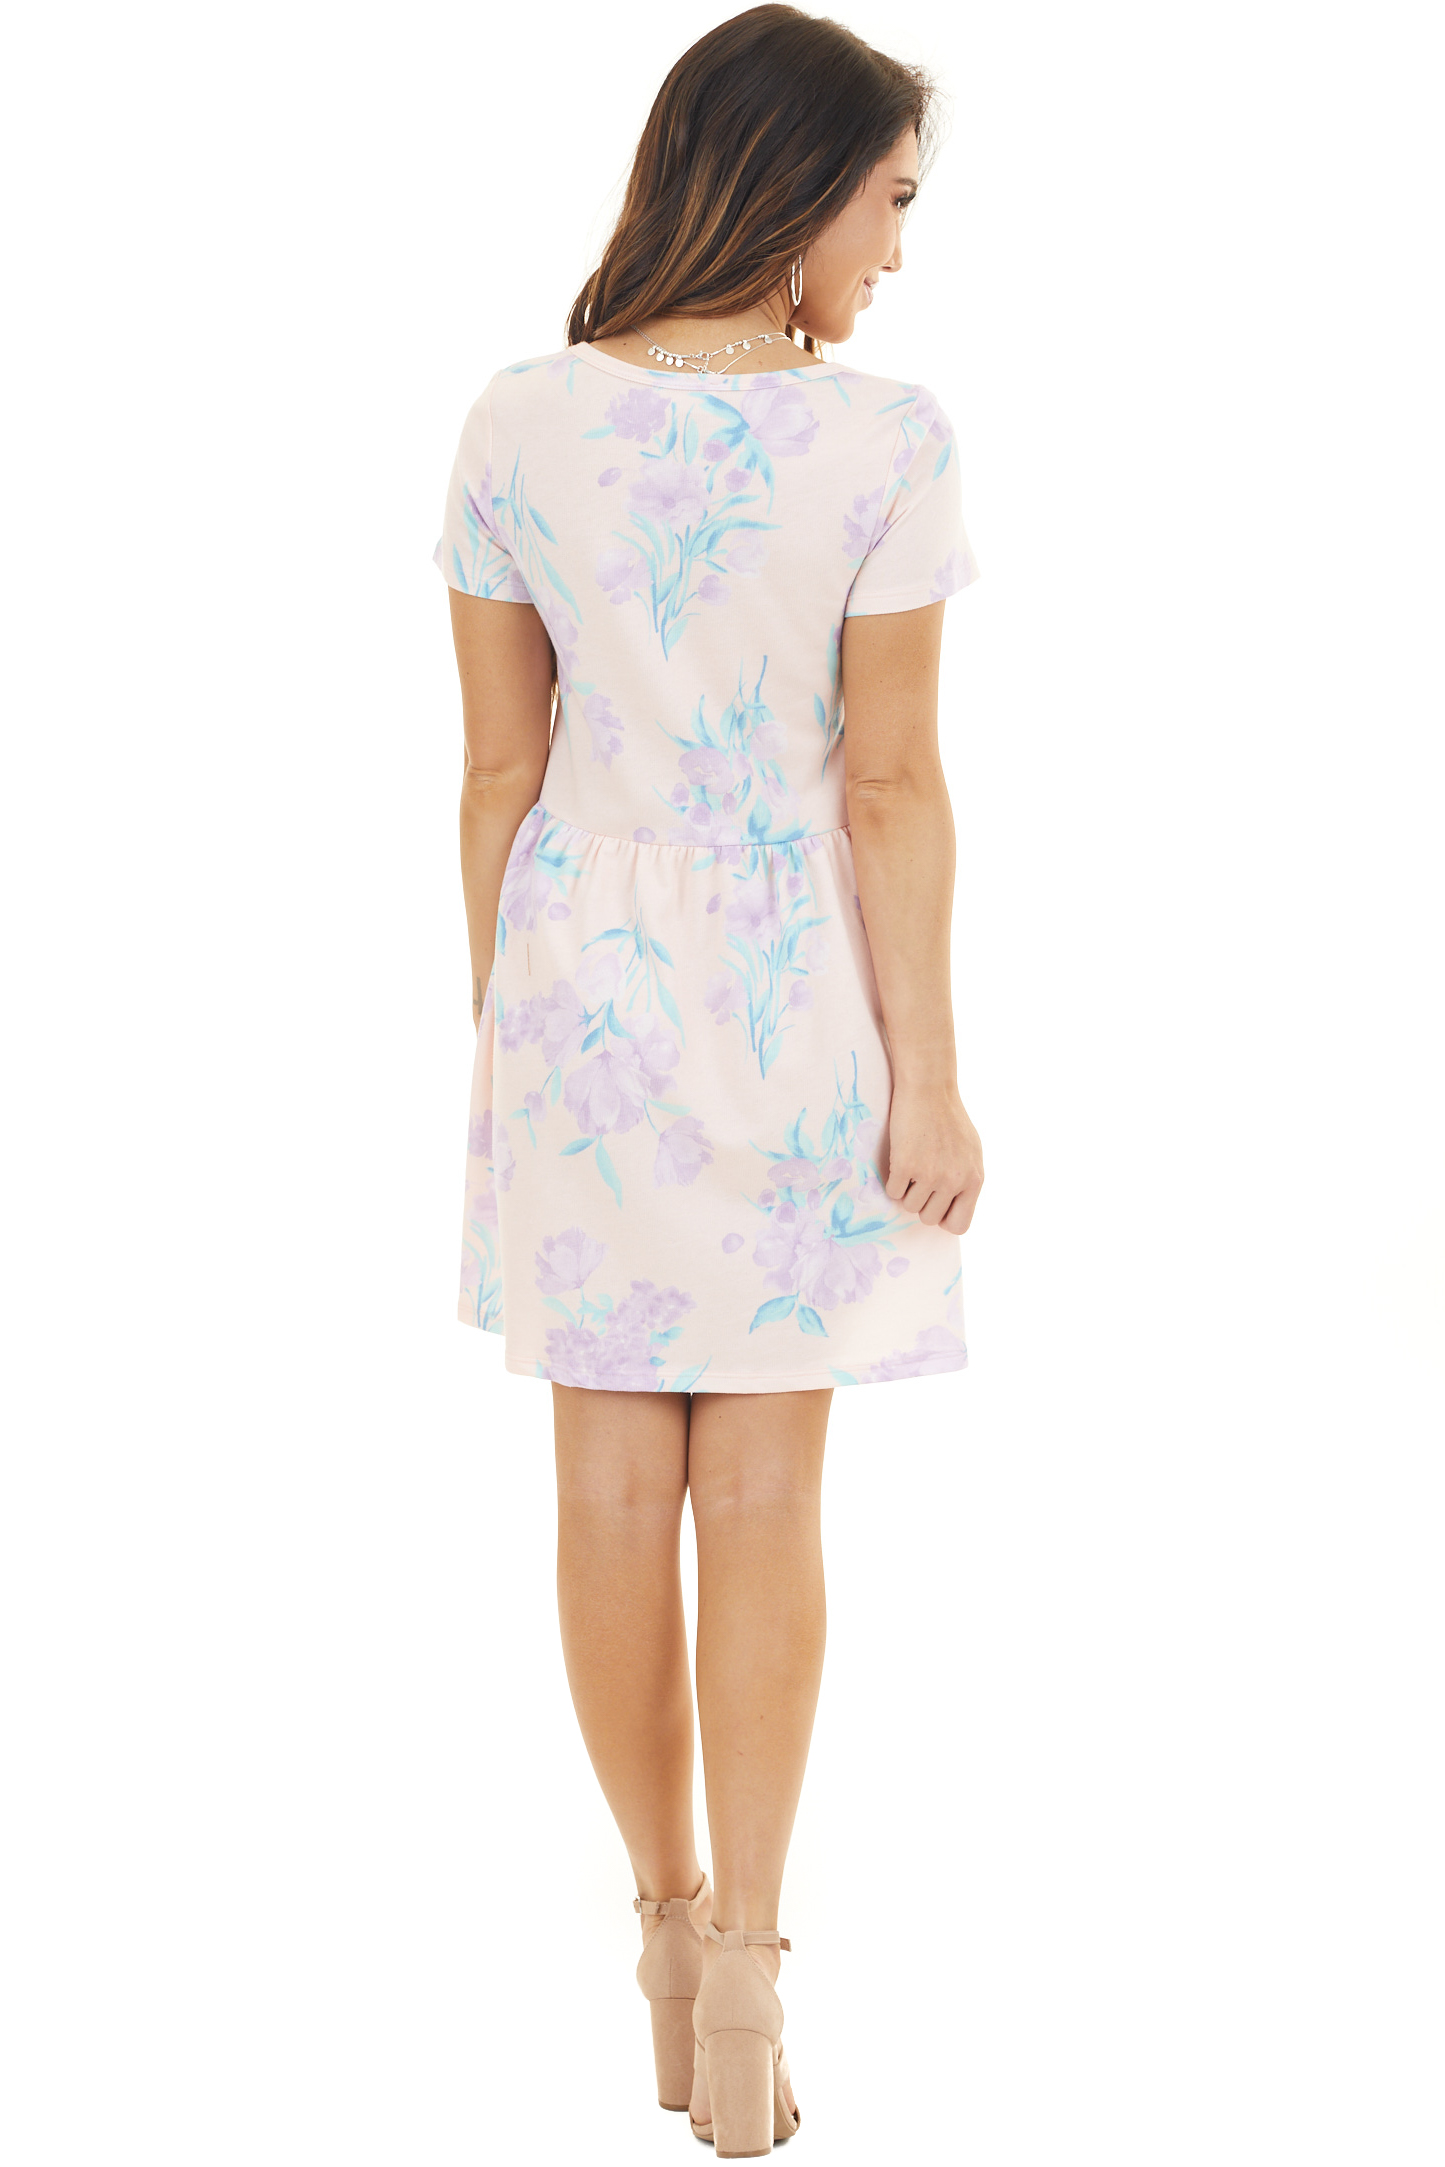 Peach and Lilac Floral Short Dress with Drop Waist